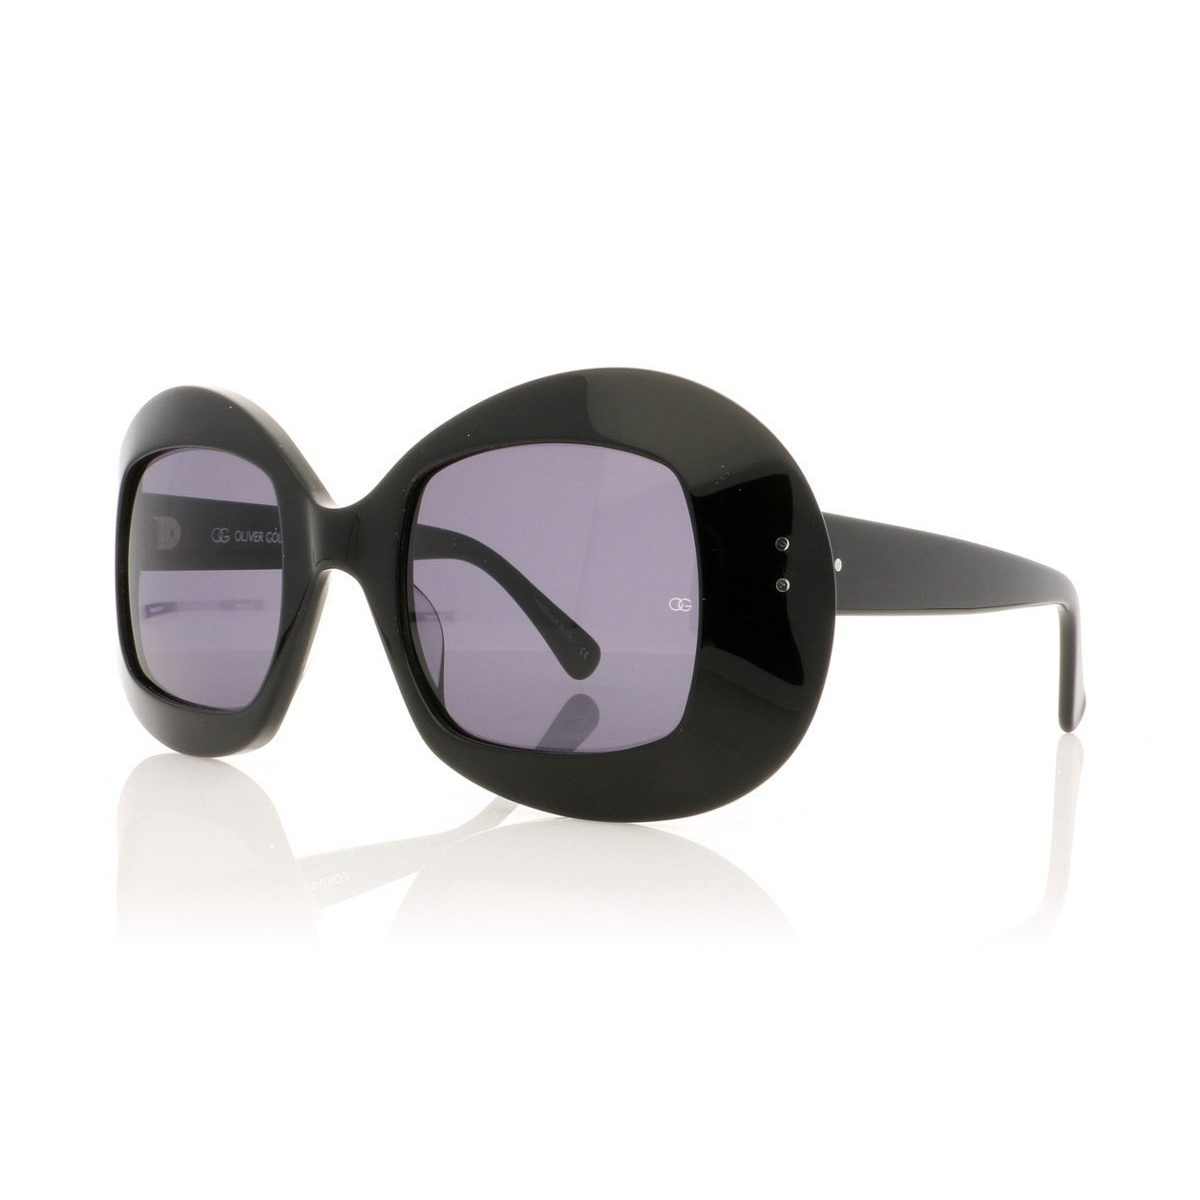 File:Oliver Goldsmith Uuksuu Sunglasses.jpg